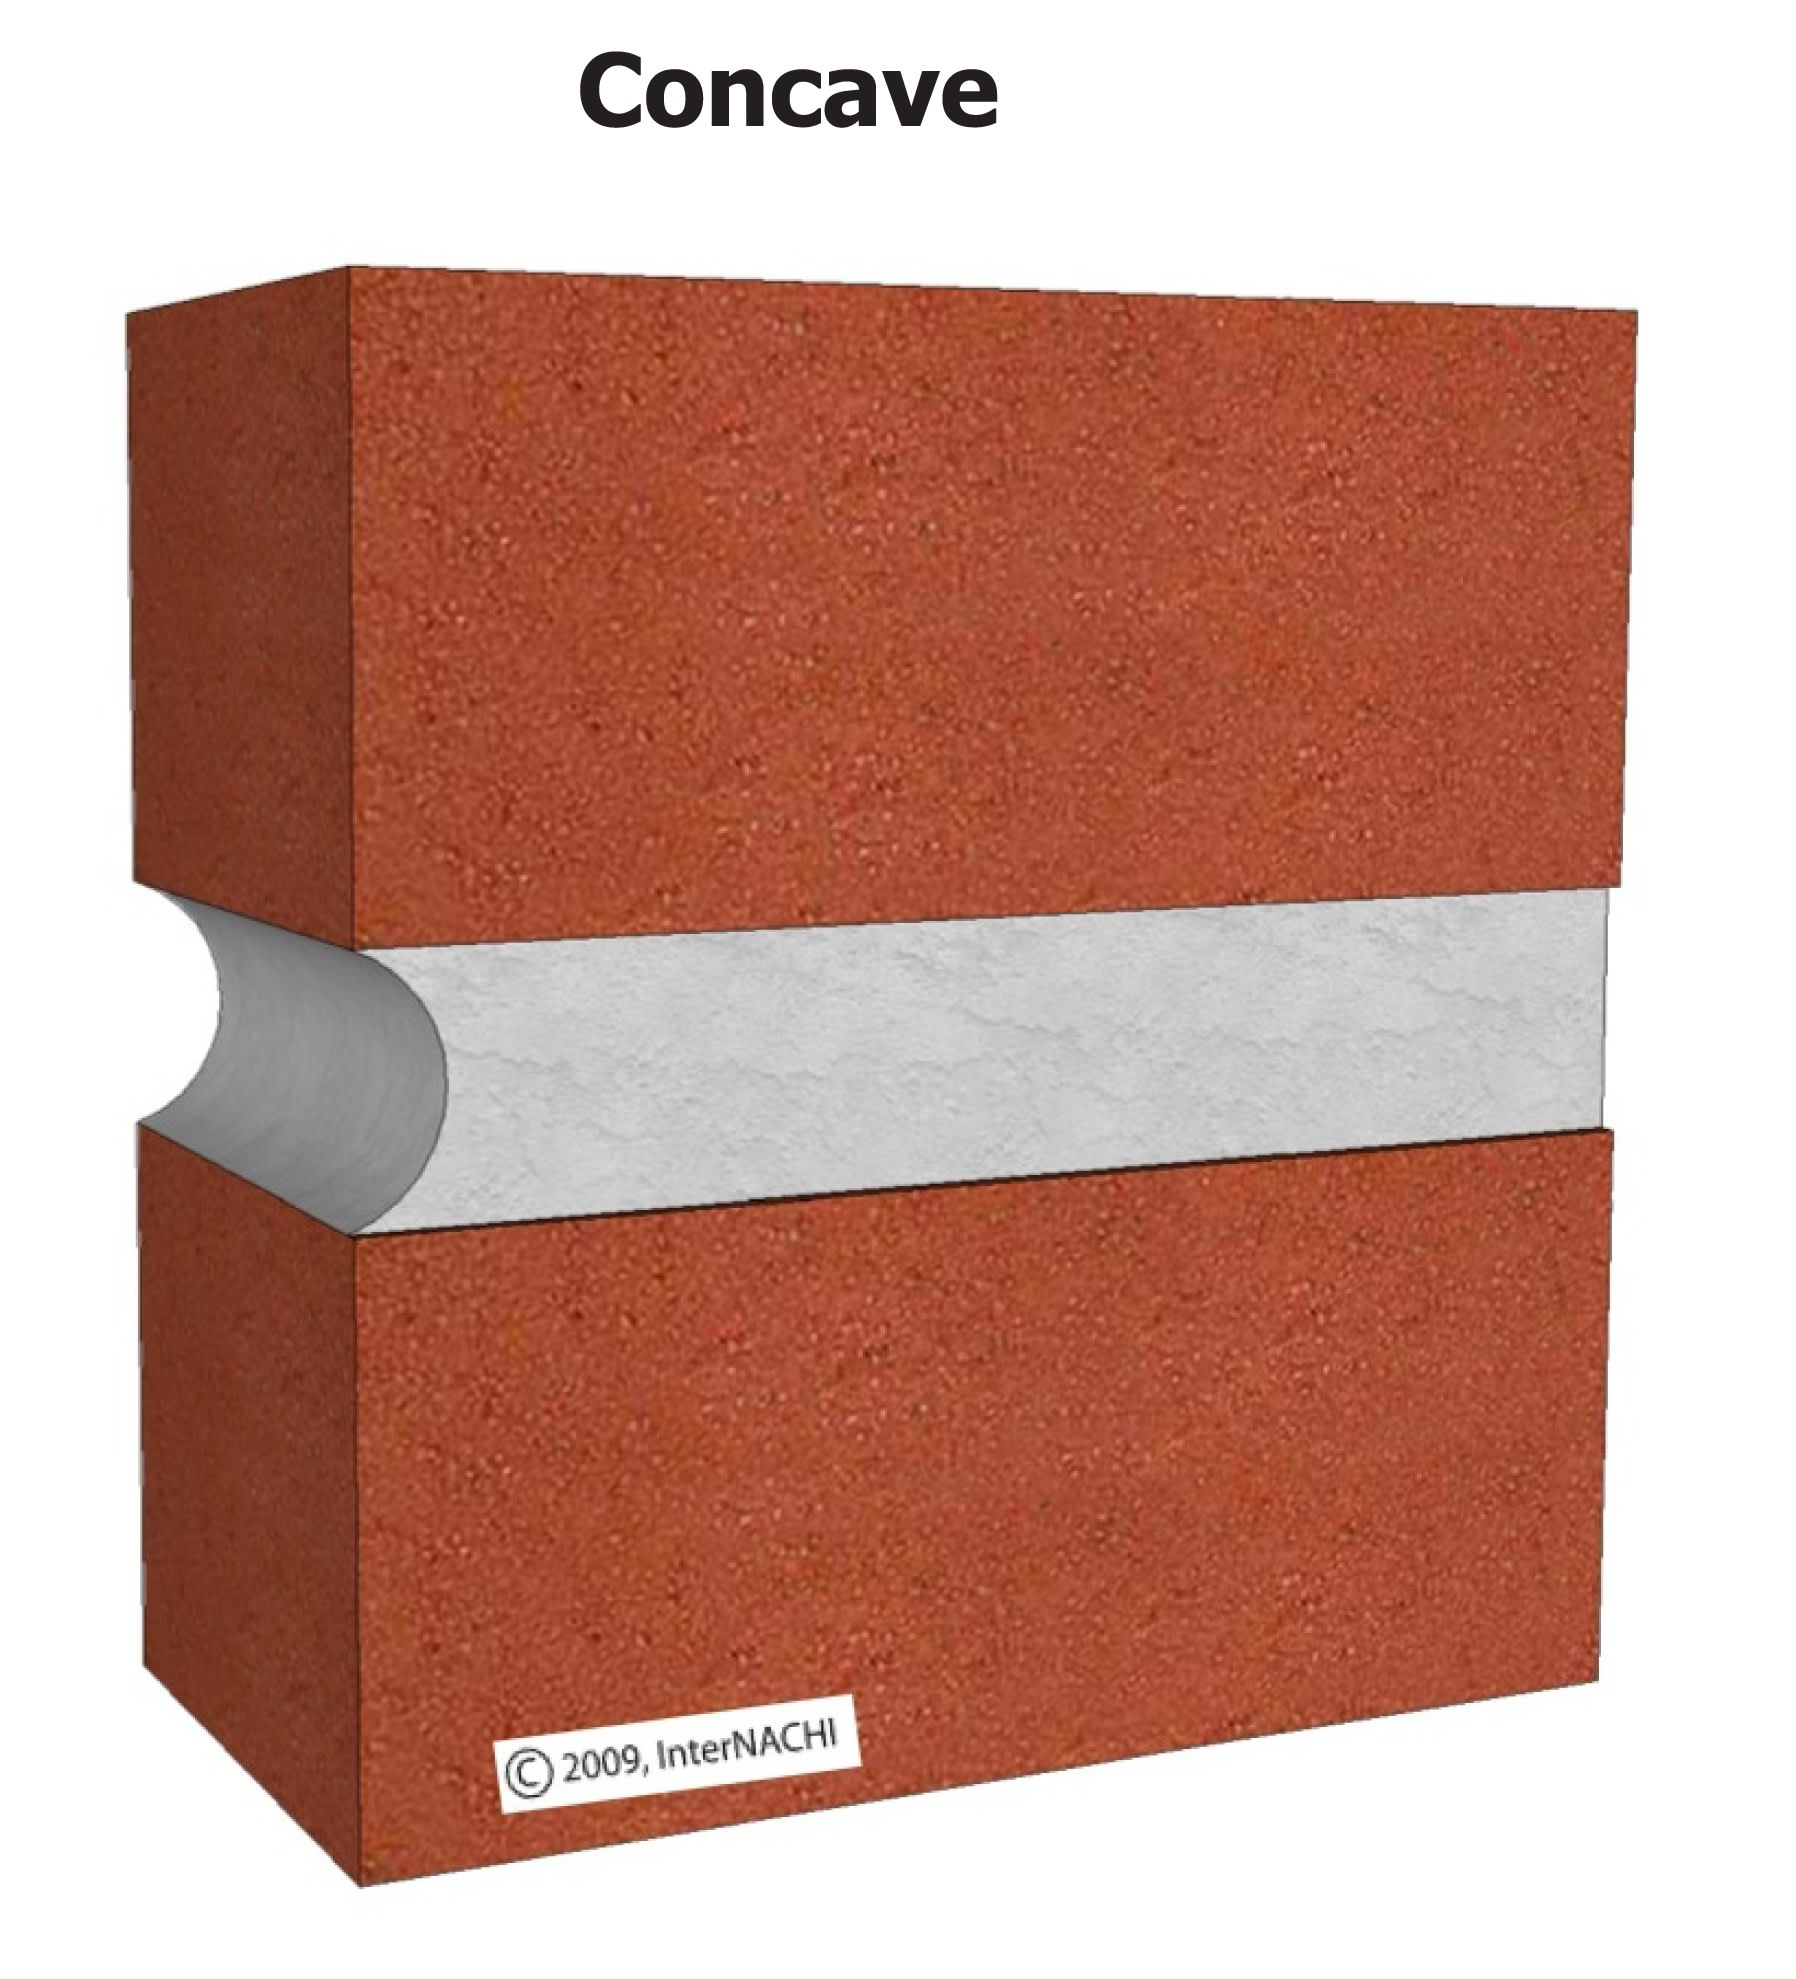 Concave mortar joint.